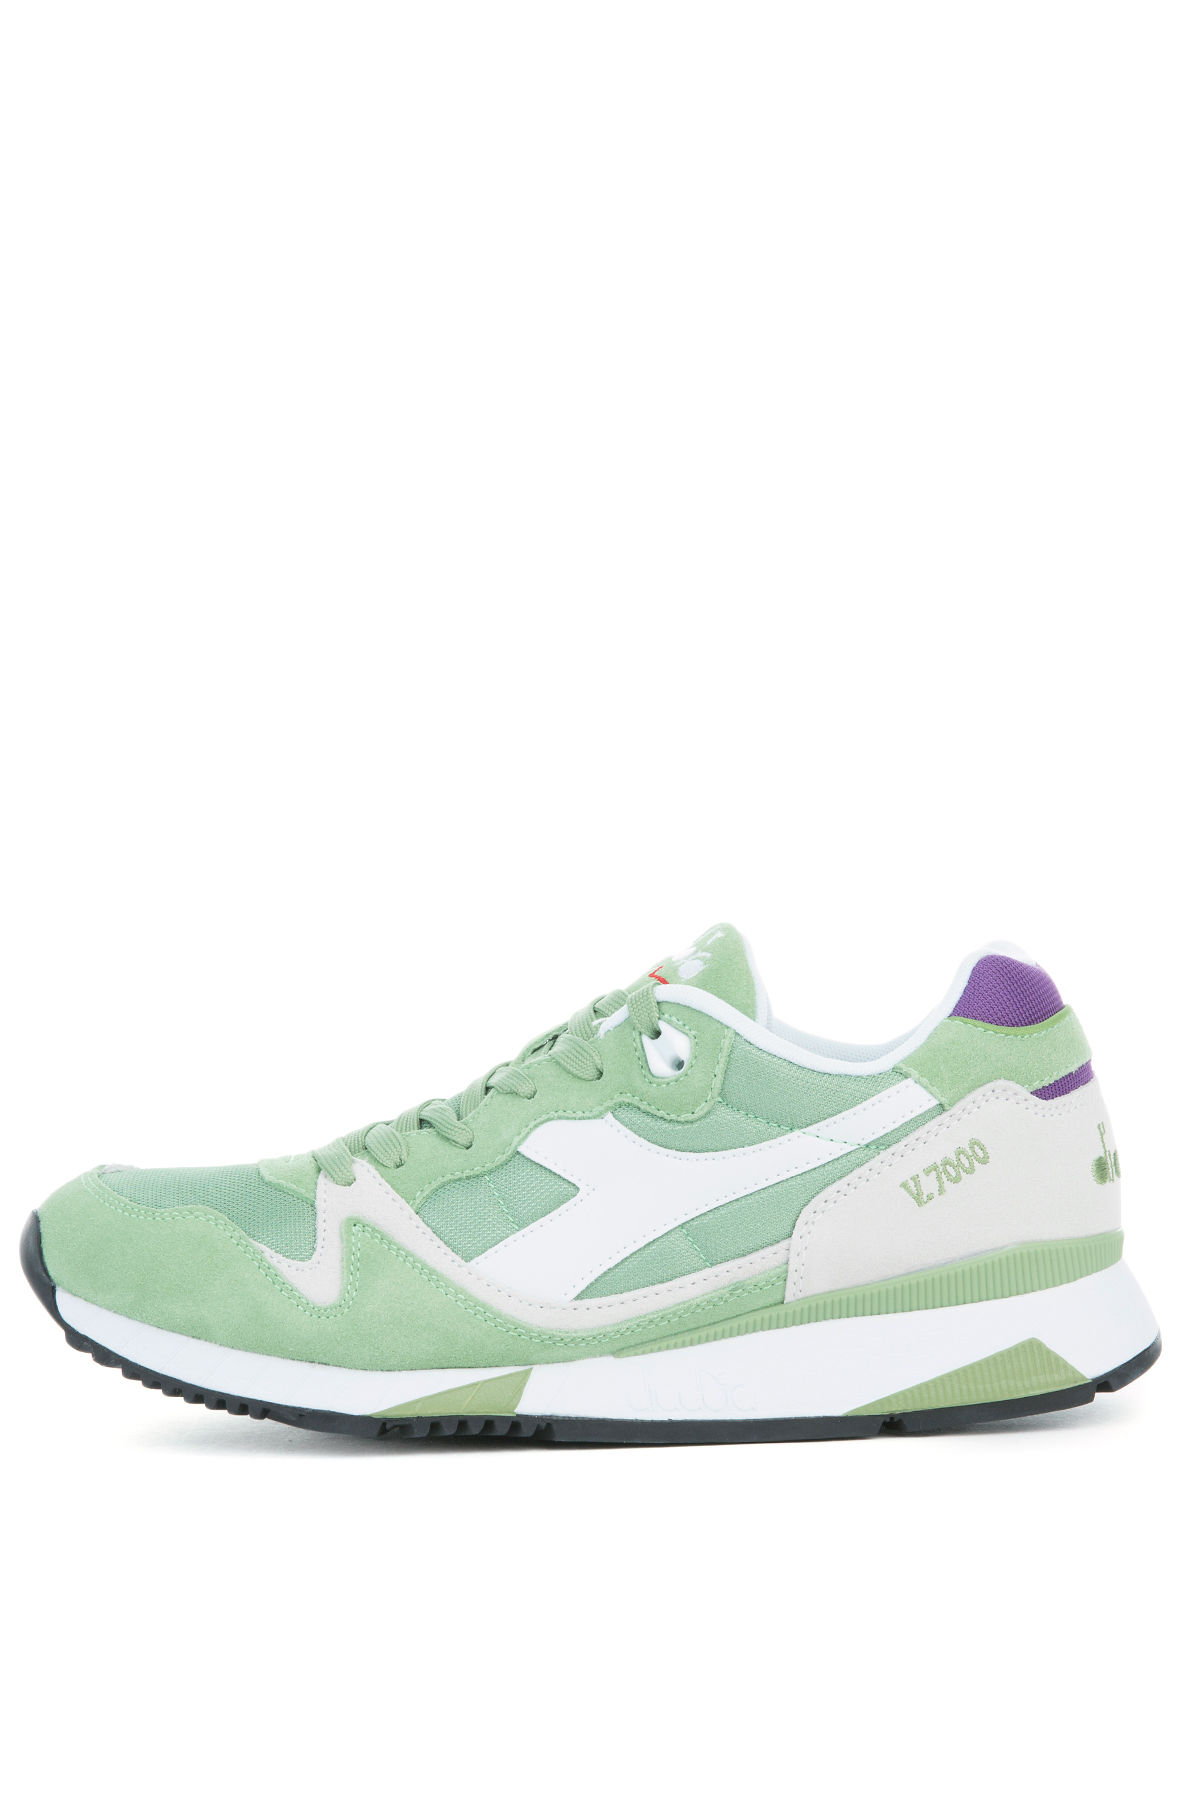 Image of The V7000 NYL II Sneaker in Forest Shade and Amaranth Purple